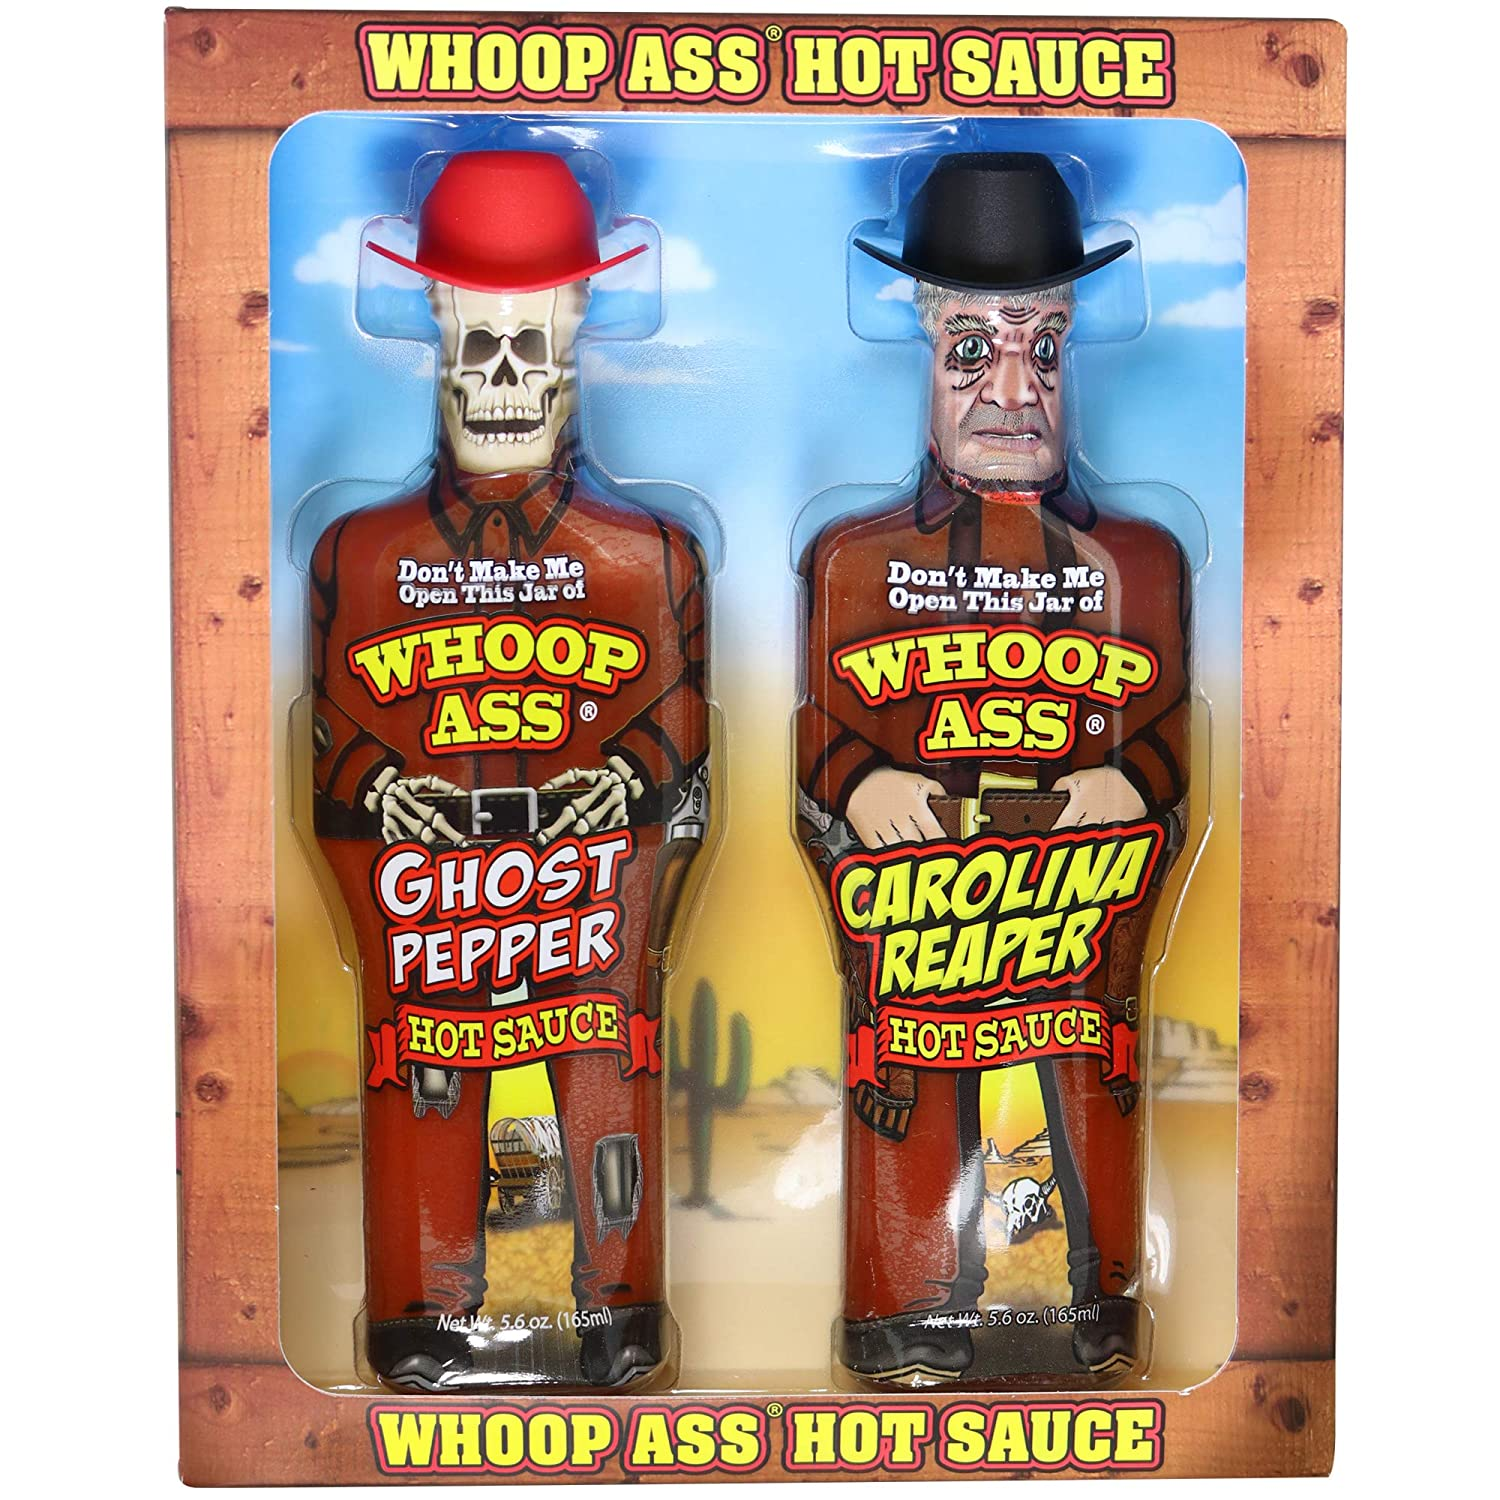 WHOOP ASS Premium Ghost Pepper Hot Sauce and Carolina Reaper Hot Sauce Gift Set - Packaged in Collectible Figurine Bottles – Perfect for Chicken Wings or a Gift for the Hot Sauce Fanatic